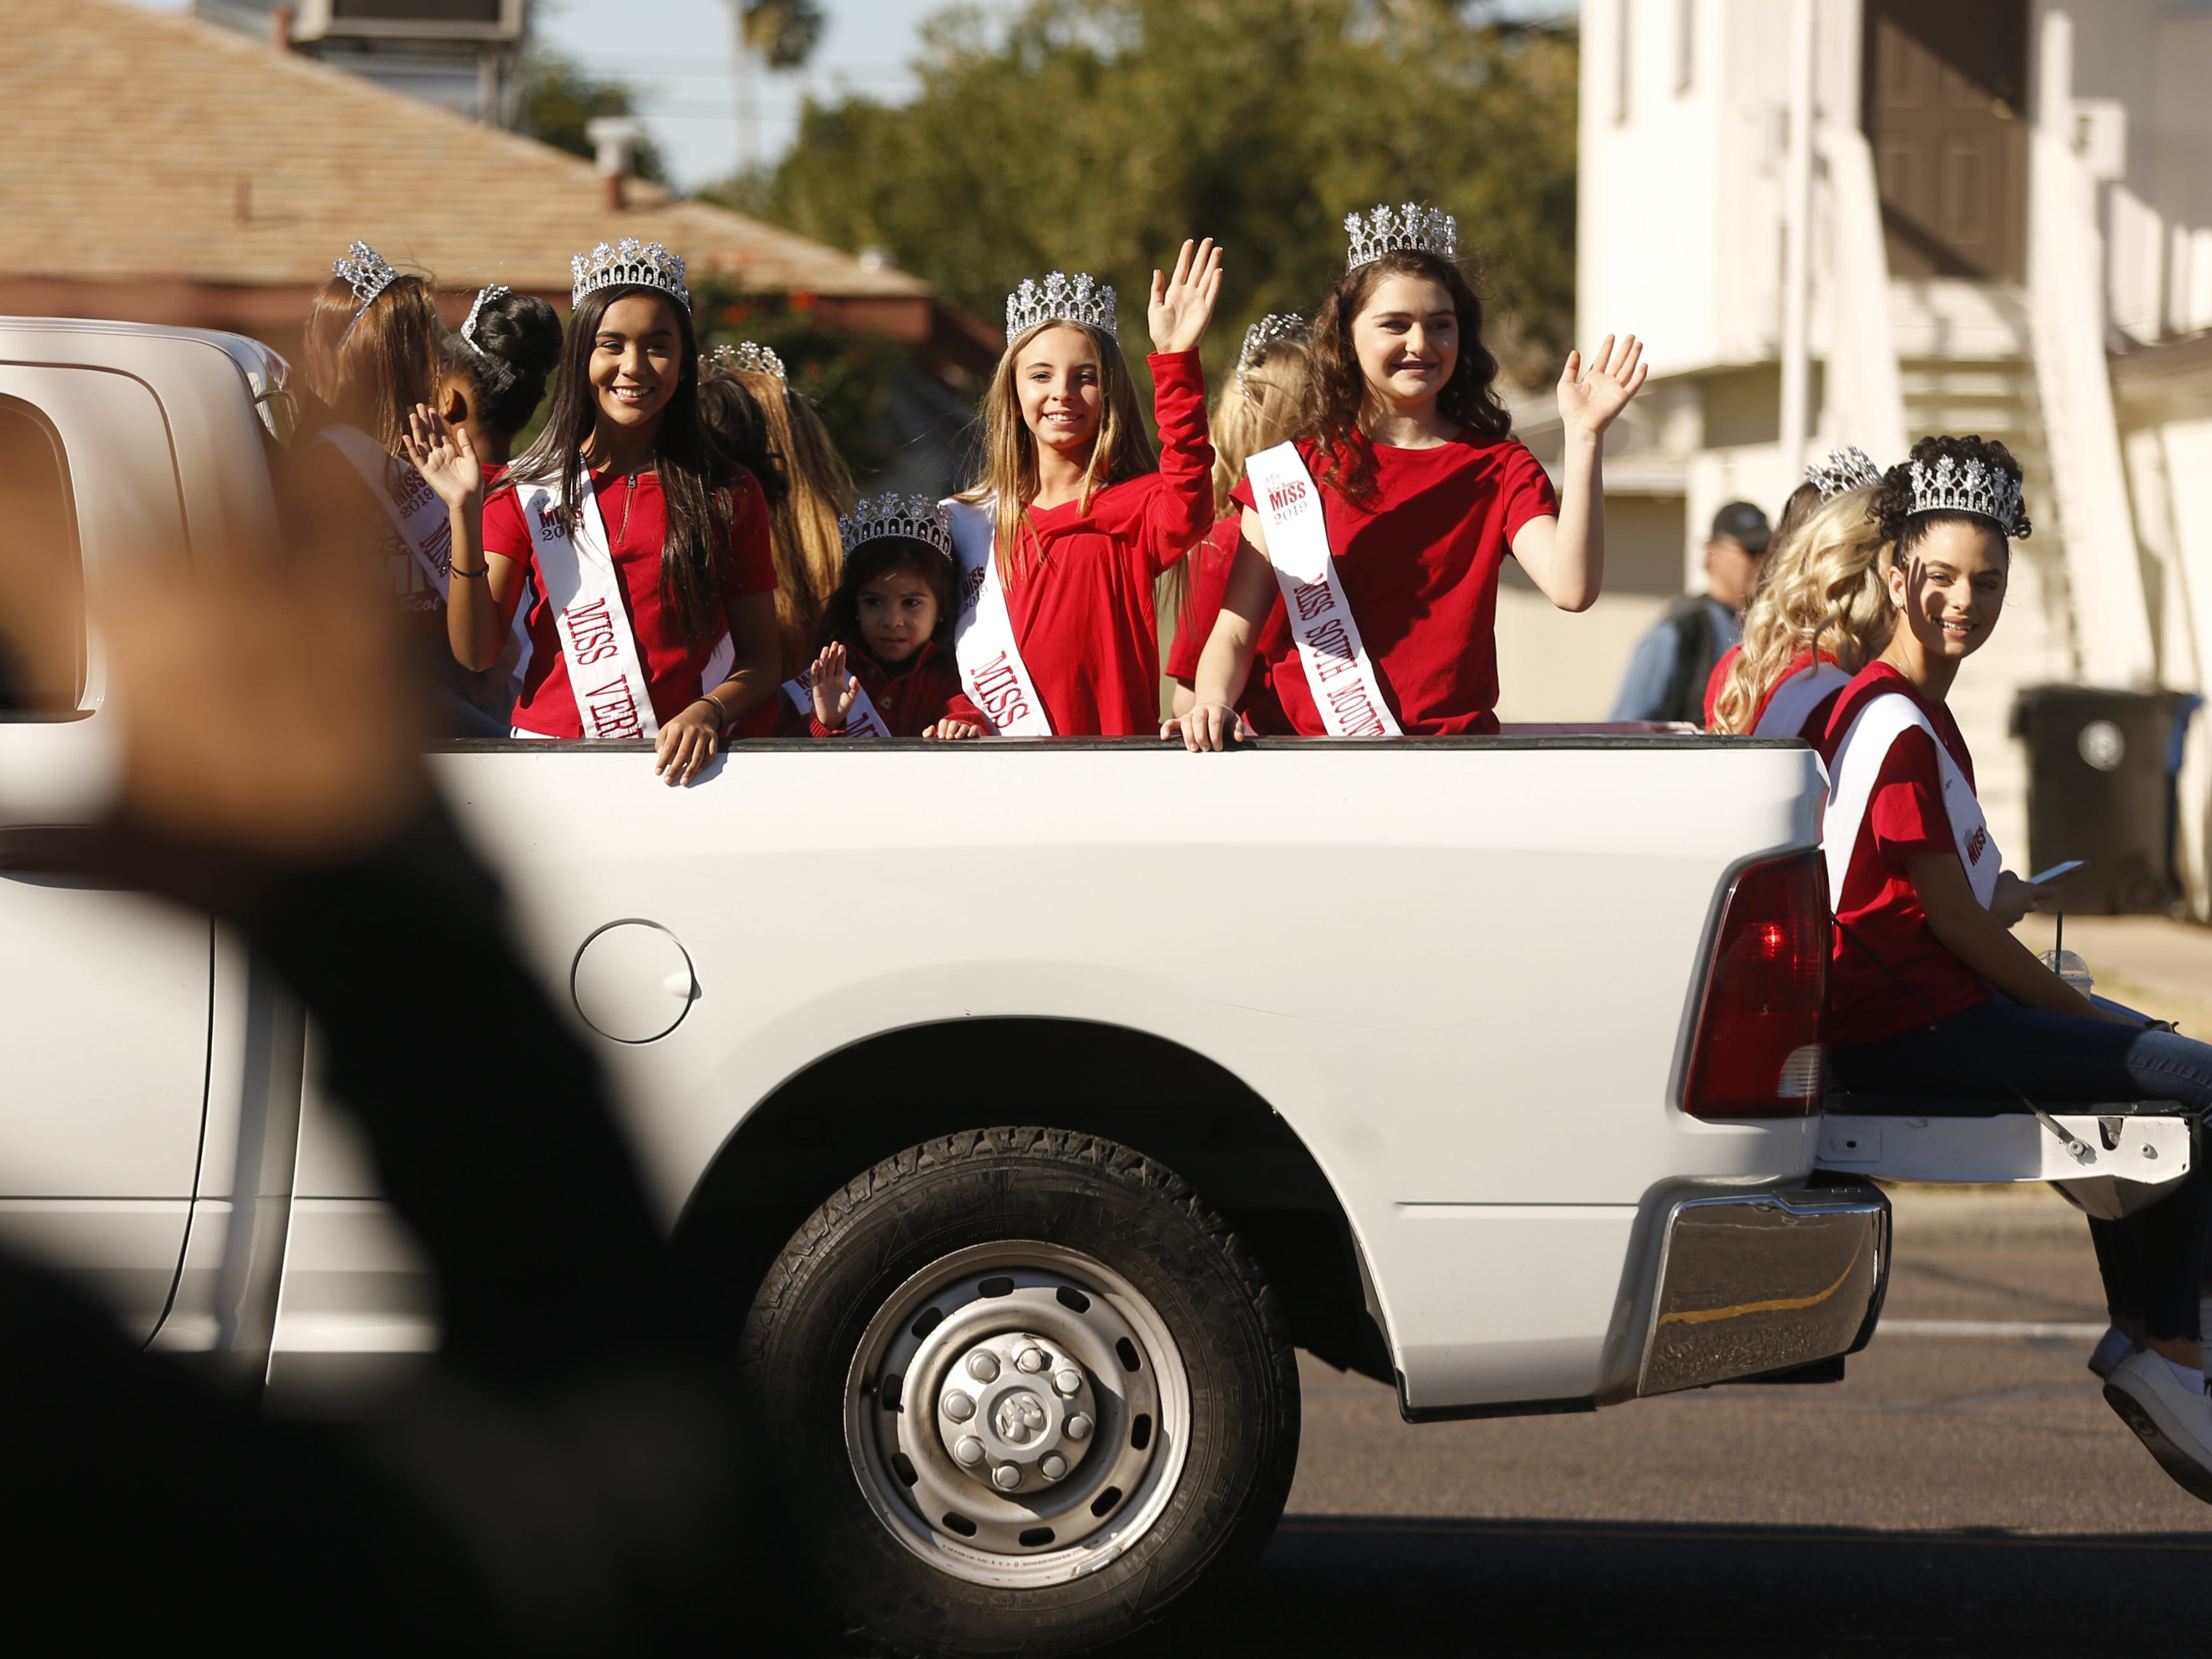 Miss Arizonas ride in the back of a truck on their way down the street during the MLK Day Parade in Mesa, Ariz. on January 21, 2019.